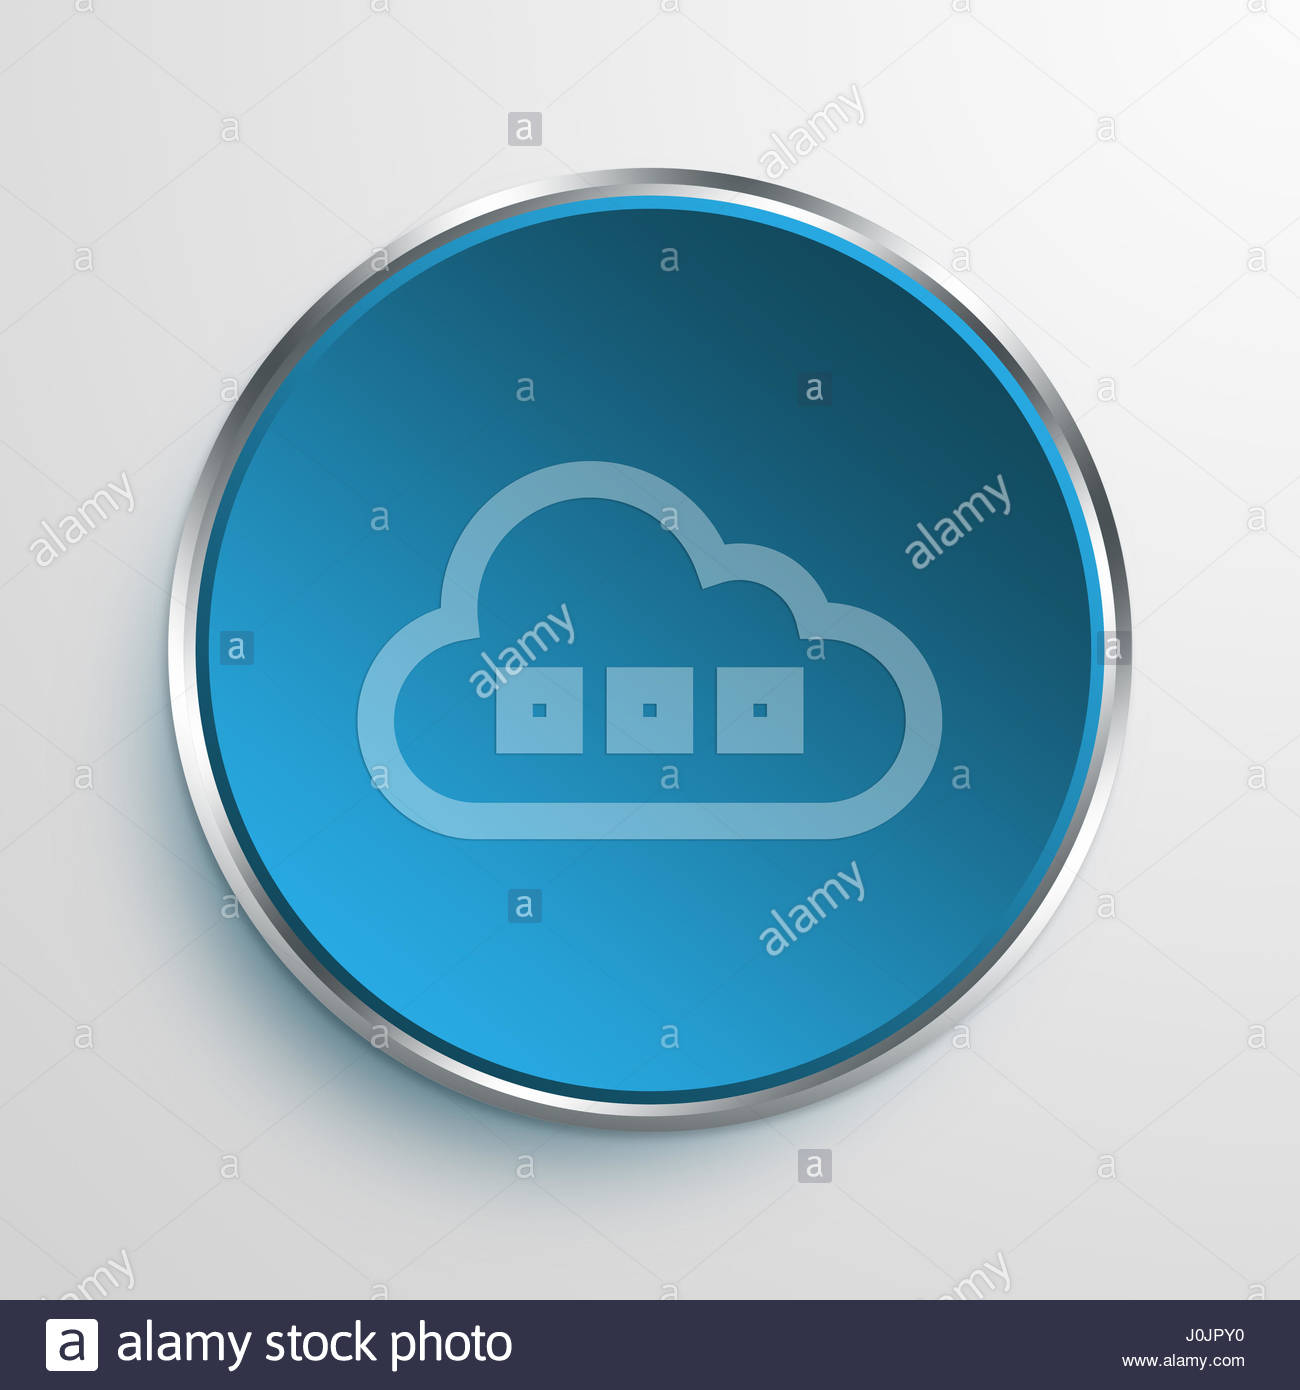 Blue sign cloud loading symbol icon business concept no11160 blue sign cloud loading symbol icon business concept no11160 biocorpaavc Image collections